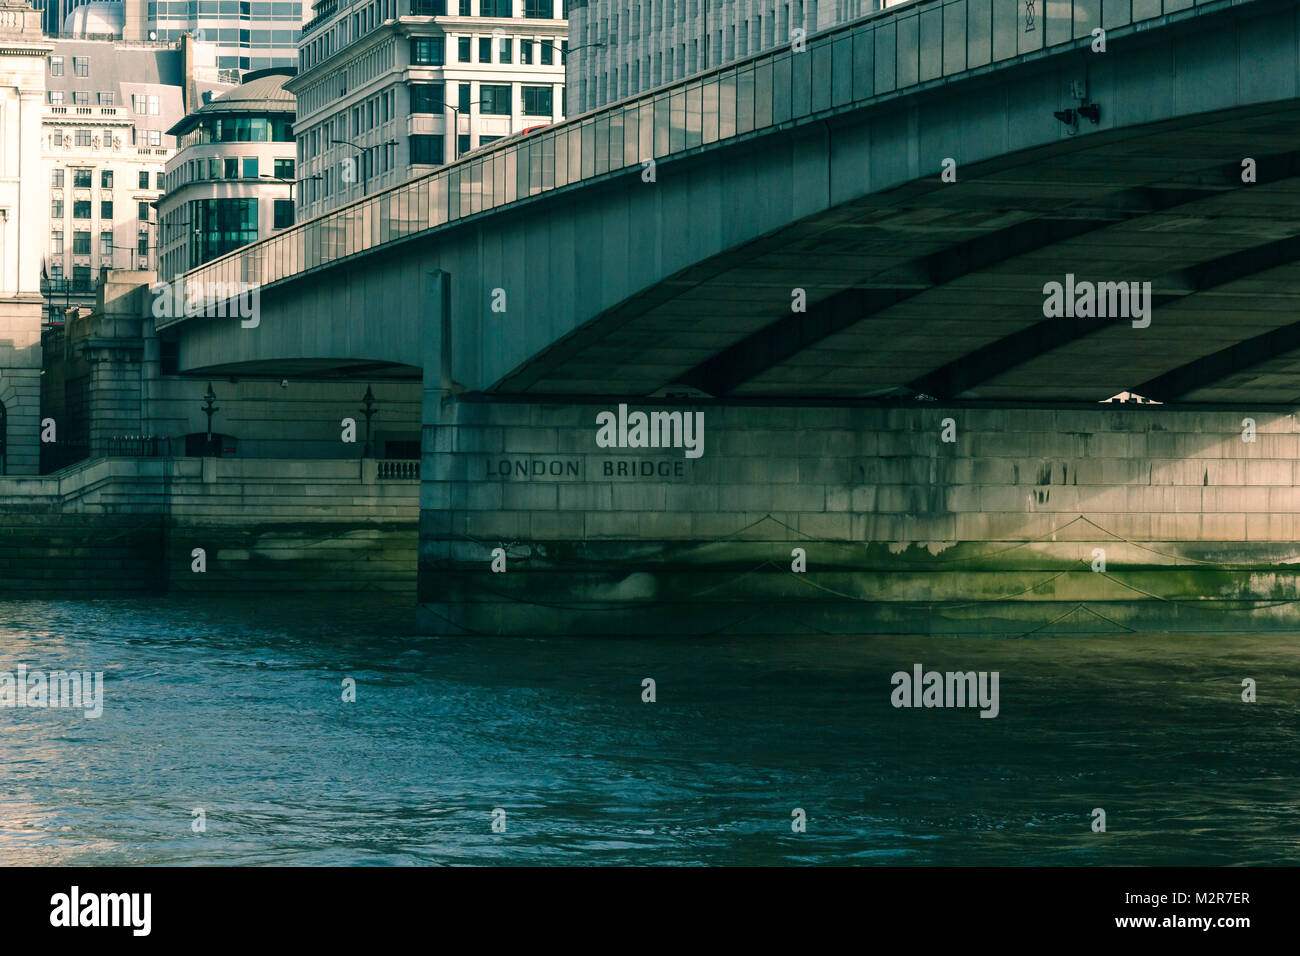 The London Bridge - inscription in stone- London, England, Great Britain, - Stock Image